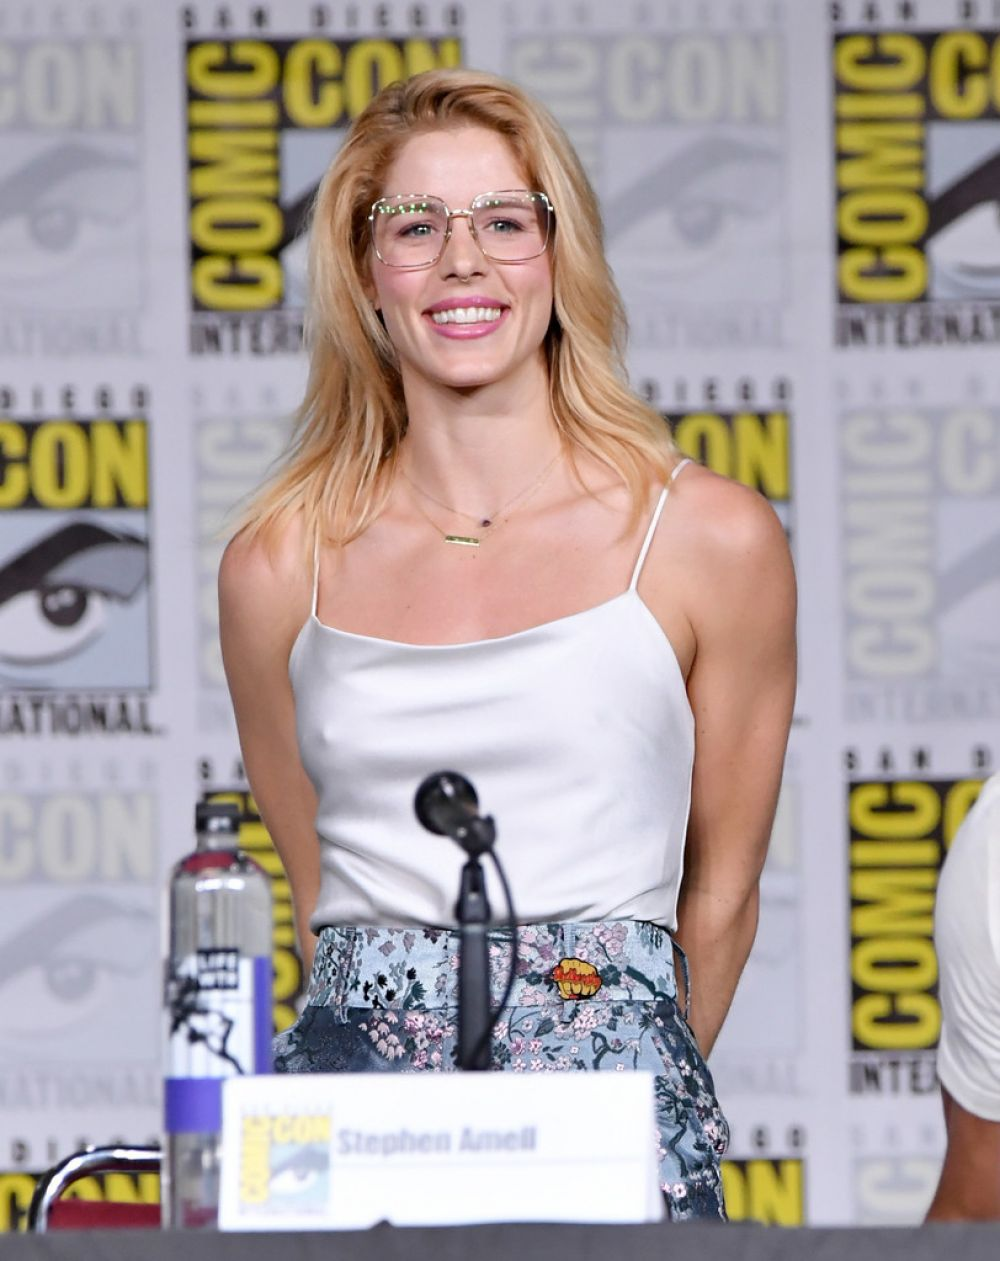 Emily Bett Rickards At Arrow Panel At Comic Con In San Diego 07 21